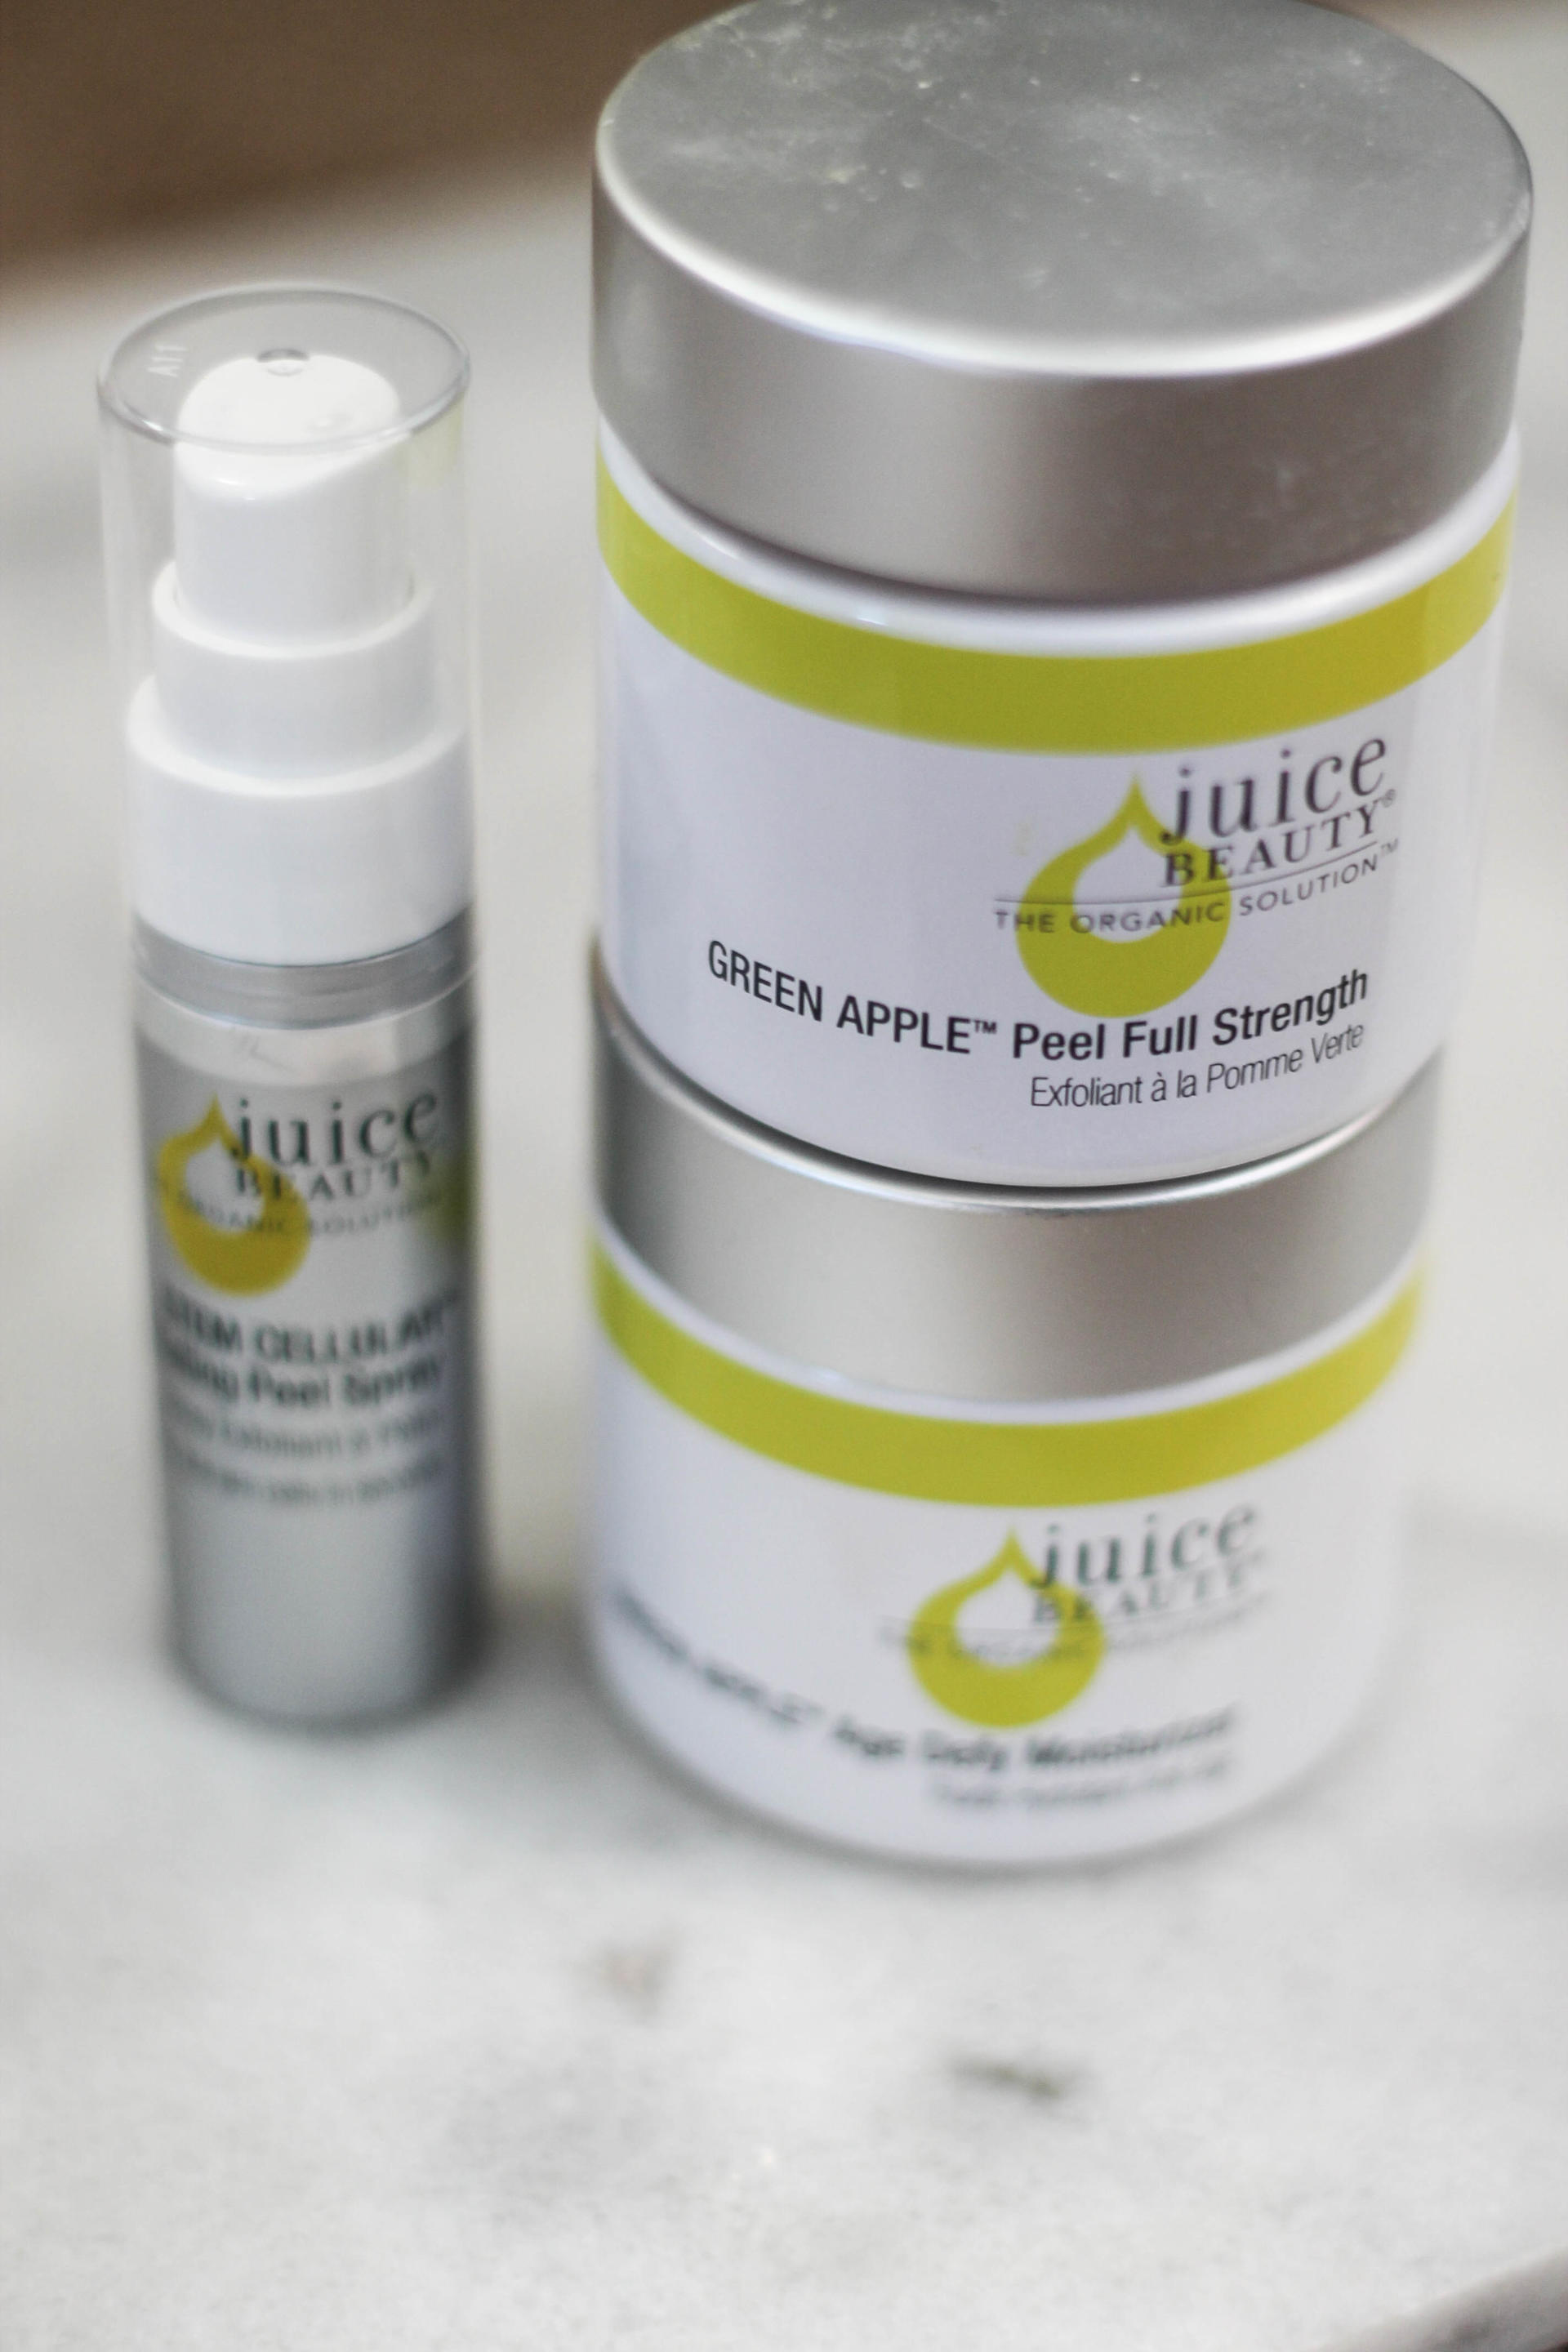 A Review of Juice Beauty. A natural, organic beauty line.